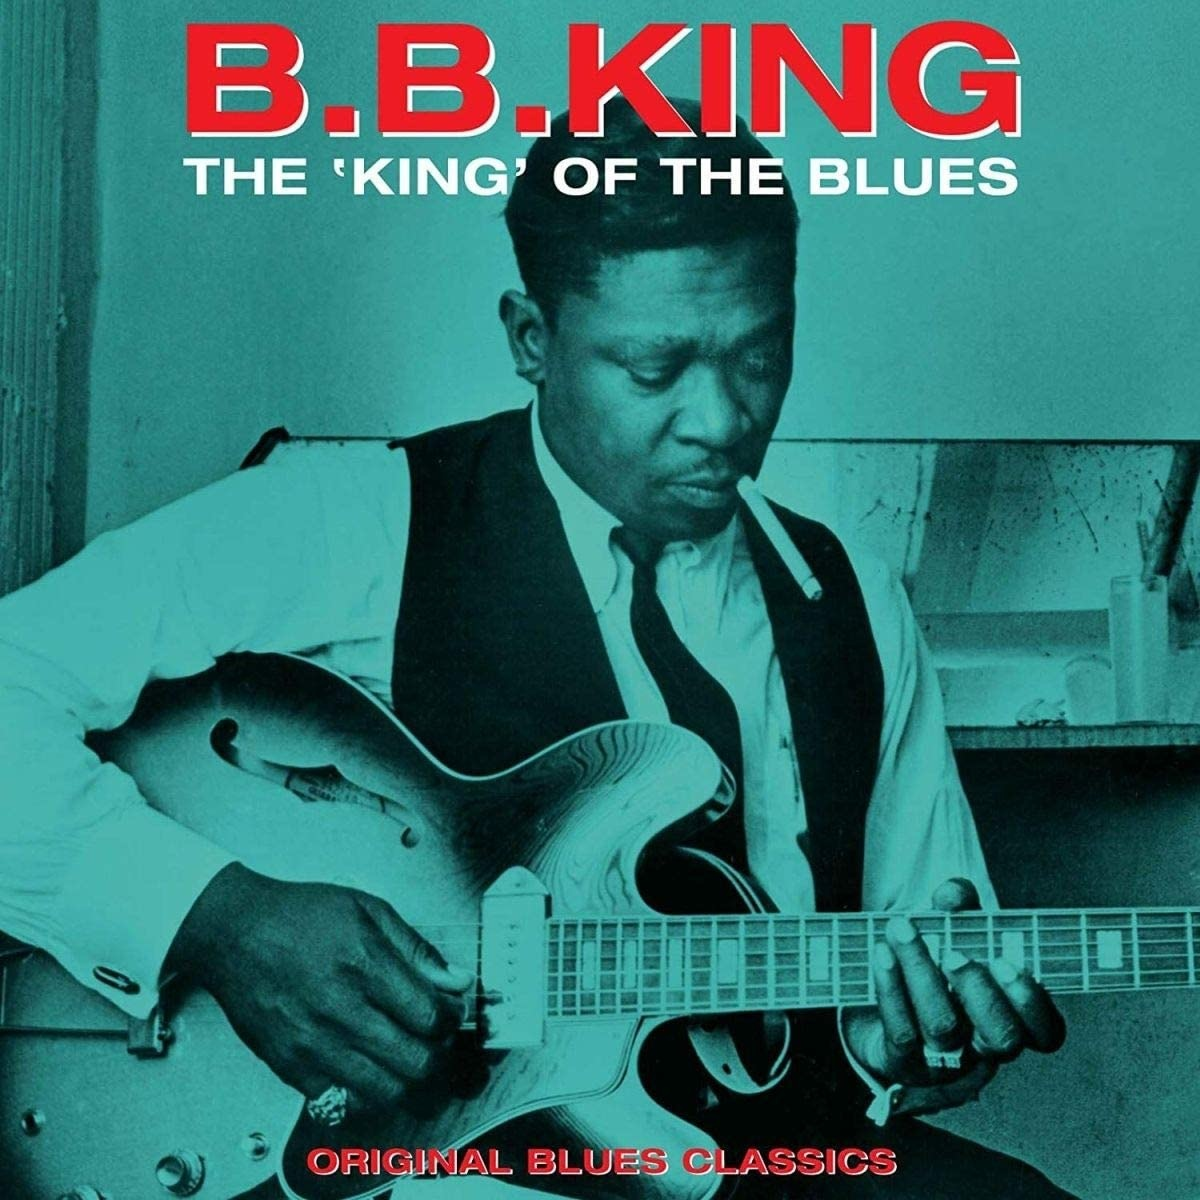 B.B. King ‎– The King Of The Blues - Original Blues Classics